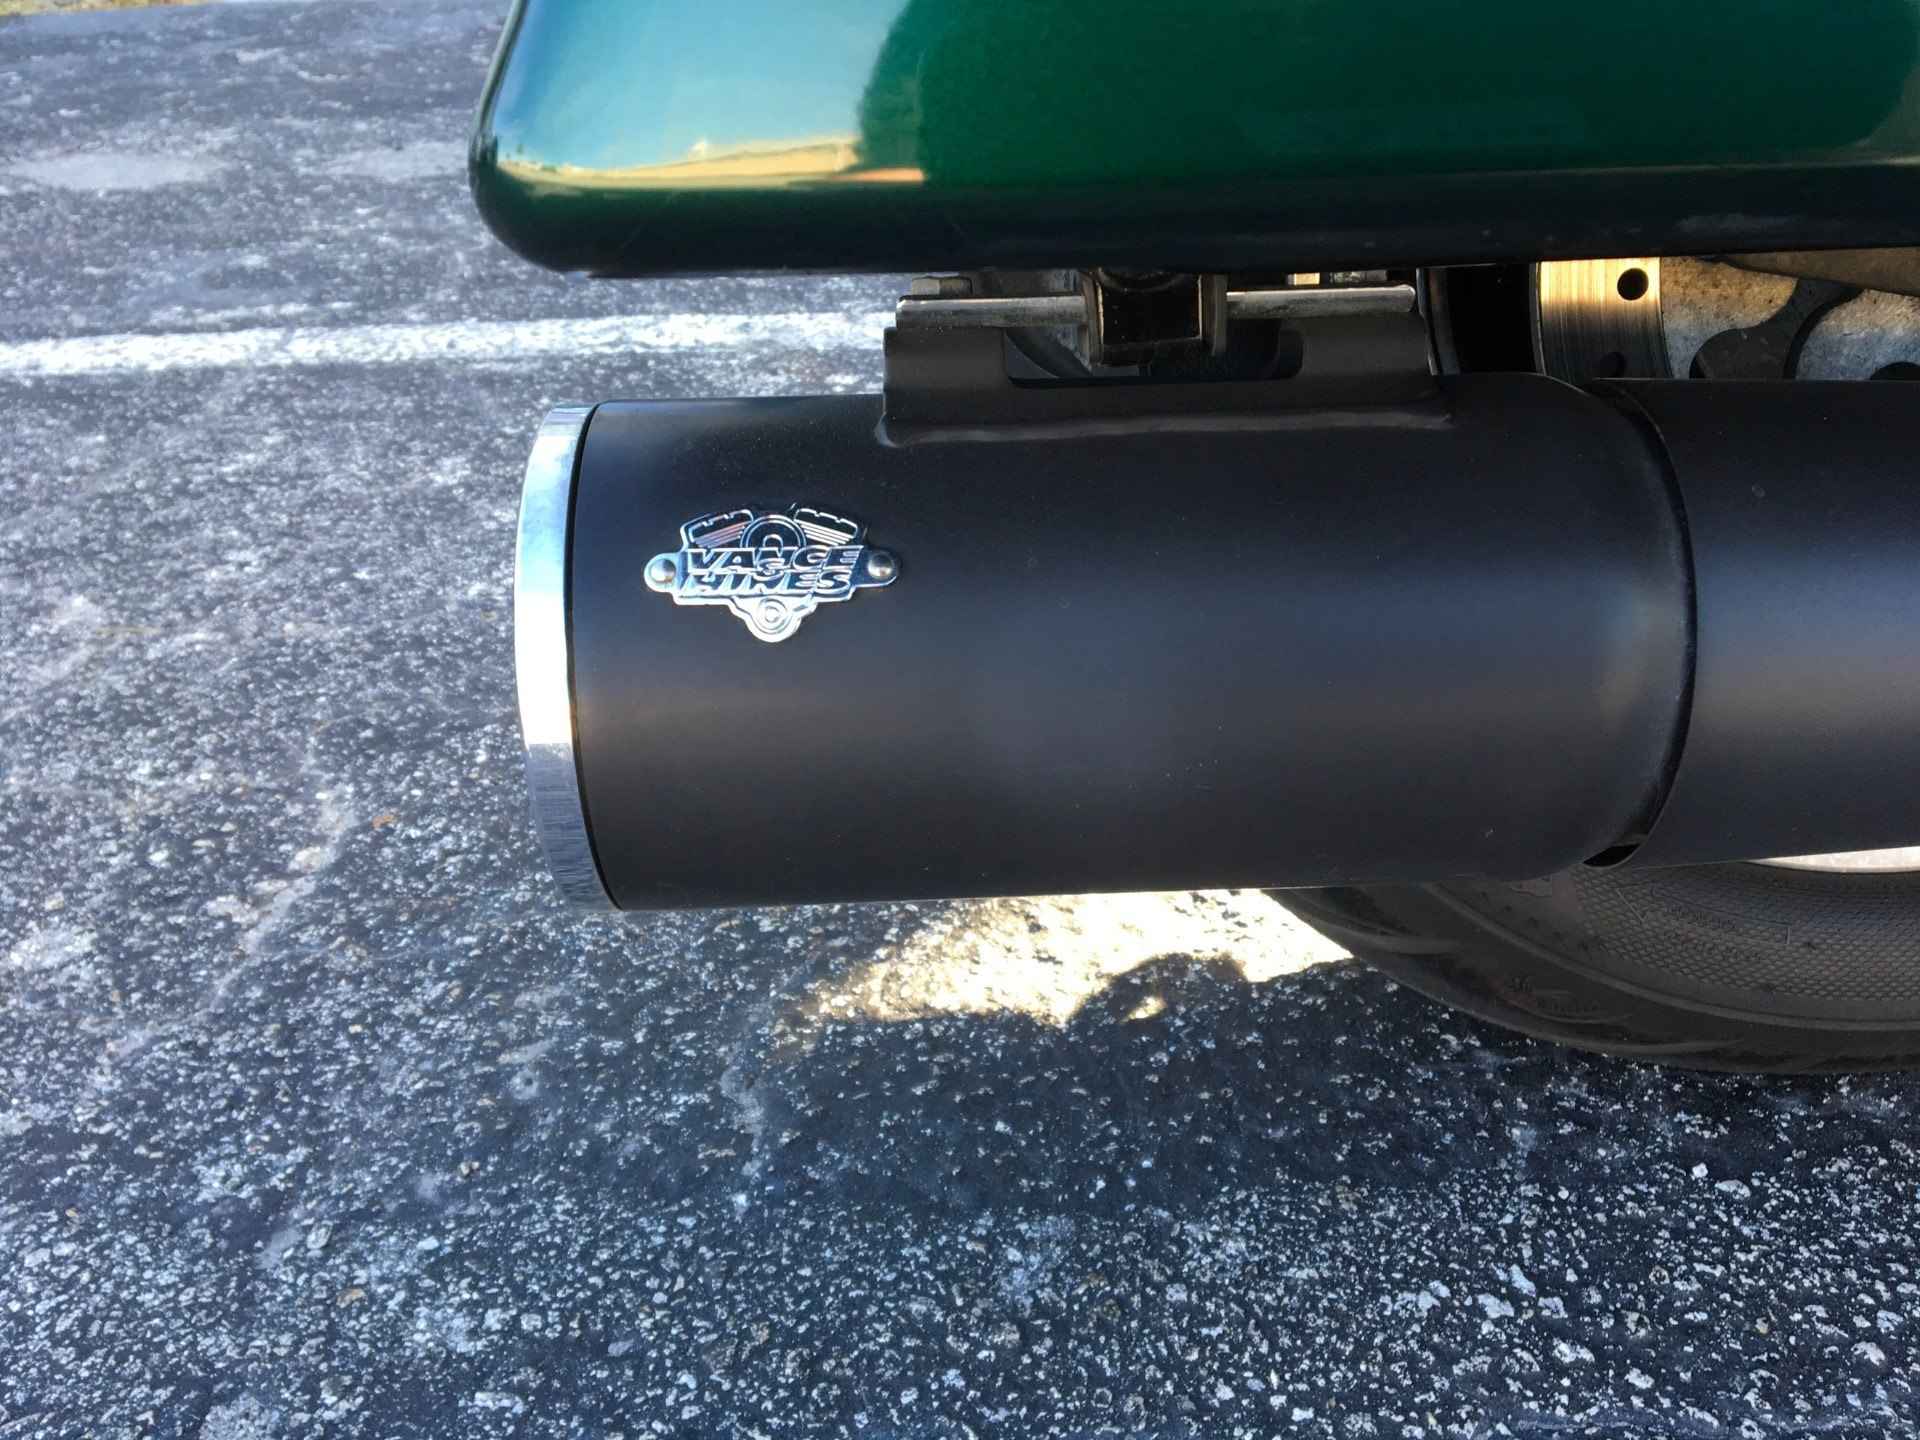 Full Vance & Hines - Photo 15